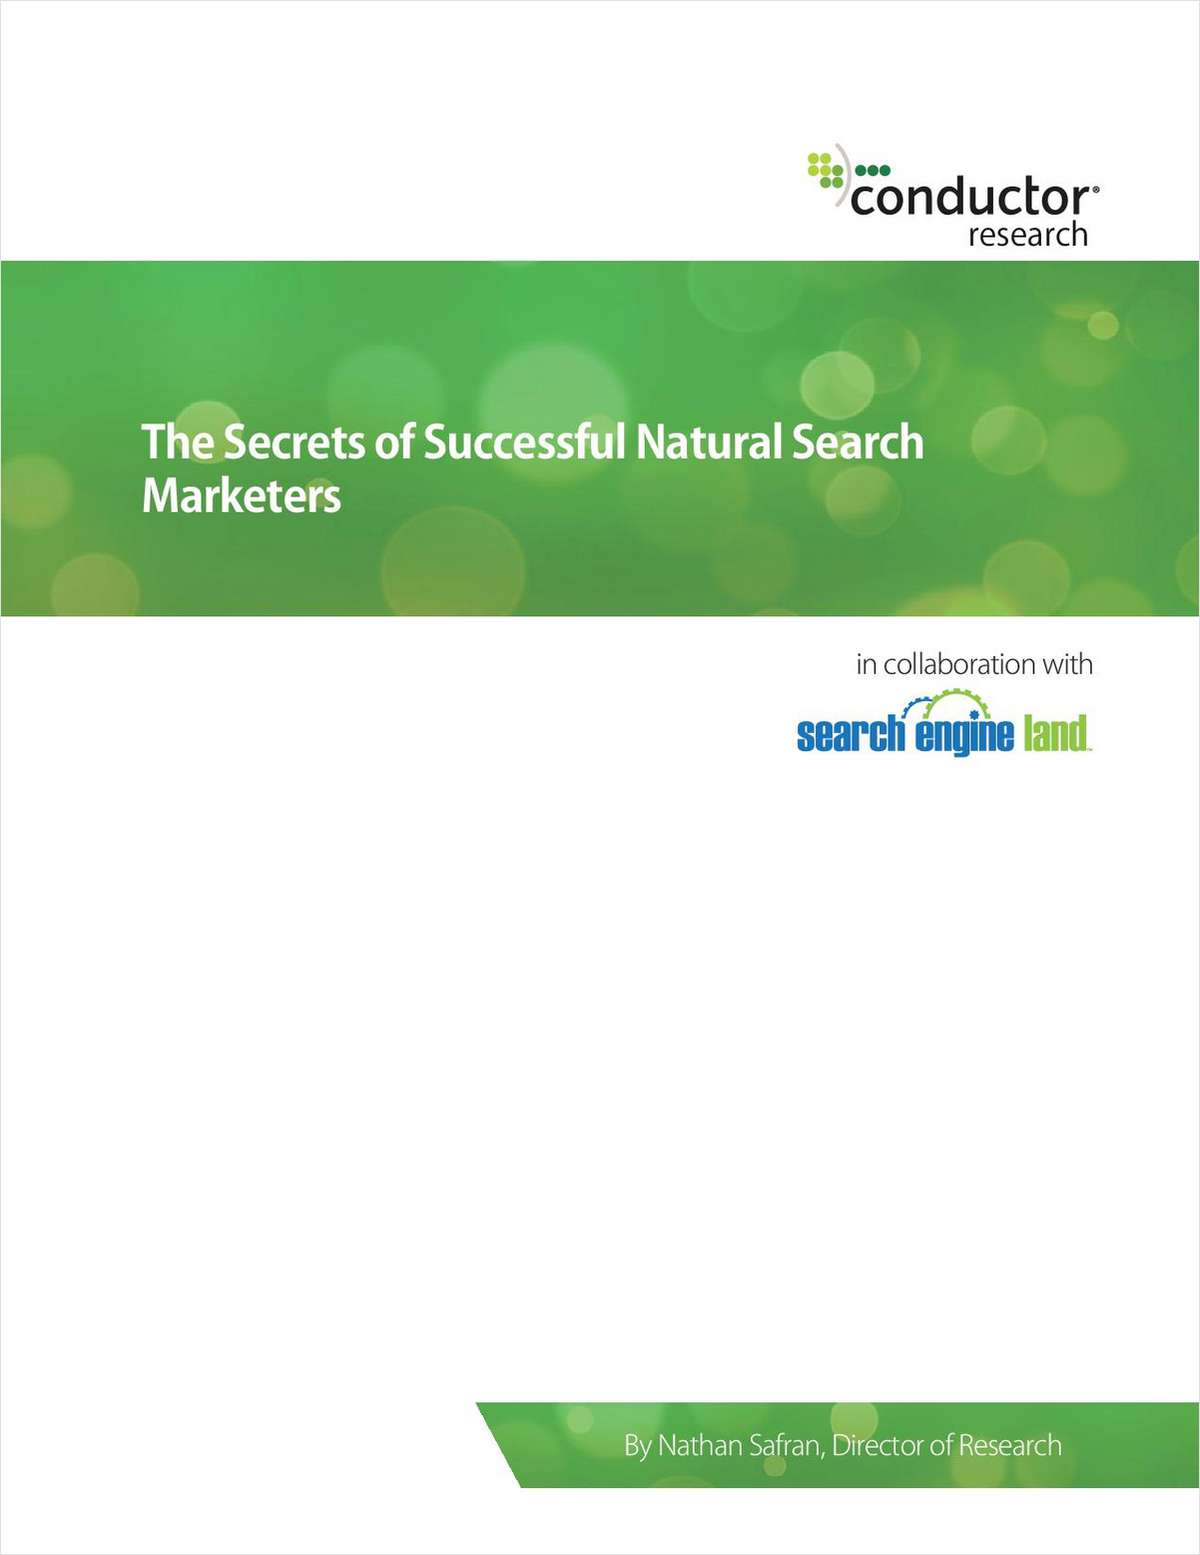 The Secrets of Successful Natural Search Marketers